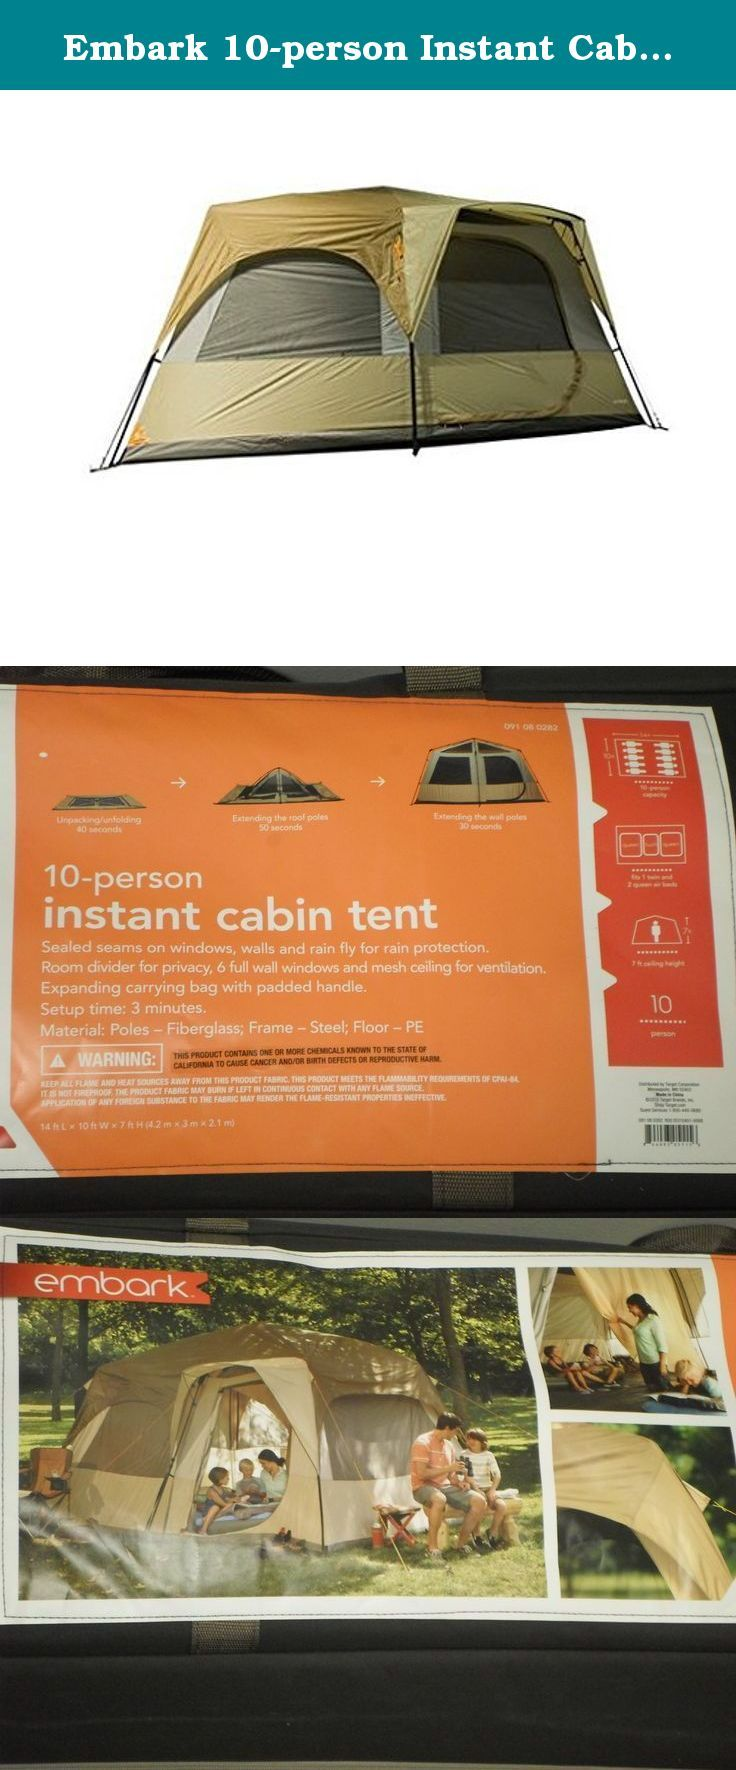 Embark 10 Person Instant Cabin Tent Embark 10 Person Instant Cabin Tent Sets Up In 3 Minutes Colors Brown And T Family Tent Camping 10 Person Tent Cabin Tent